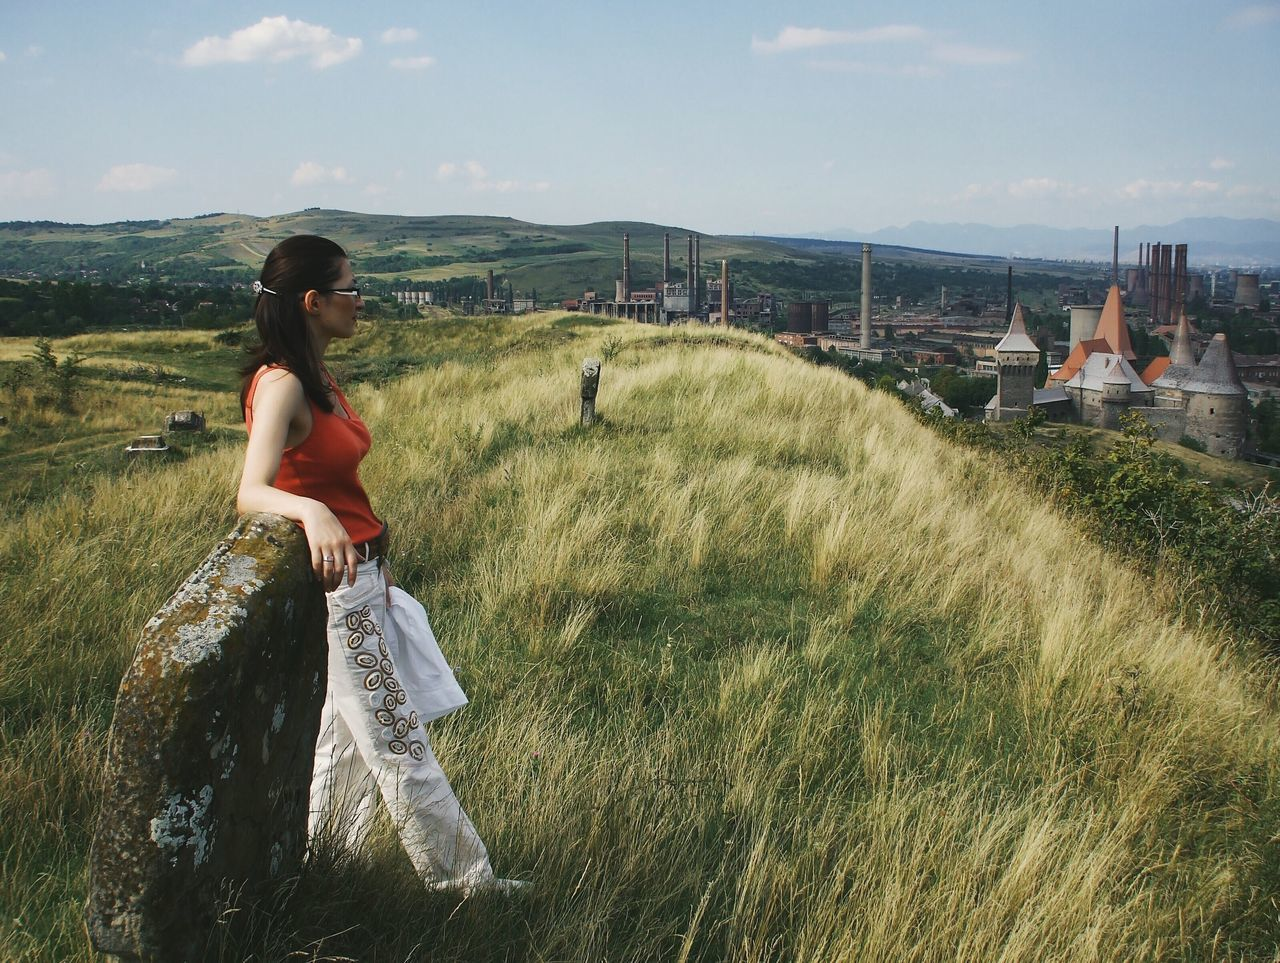 Contemplating... Grass Leisure Activity Lifestyles Beauty In Nature Nature Women Architecture Scenics Landscape Standing Young Adult Details Of My Life Made In Romania VSCO Industrial Abandoned Places Cemetery My Favorite Photo WeekOnEyeEm Summer Above Woman Fashion Castle